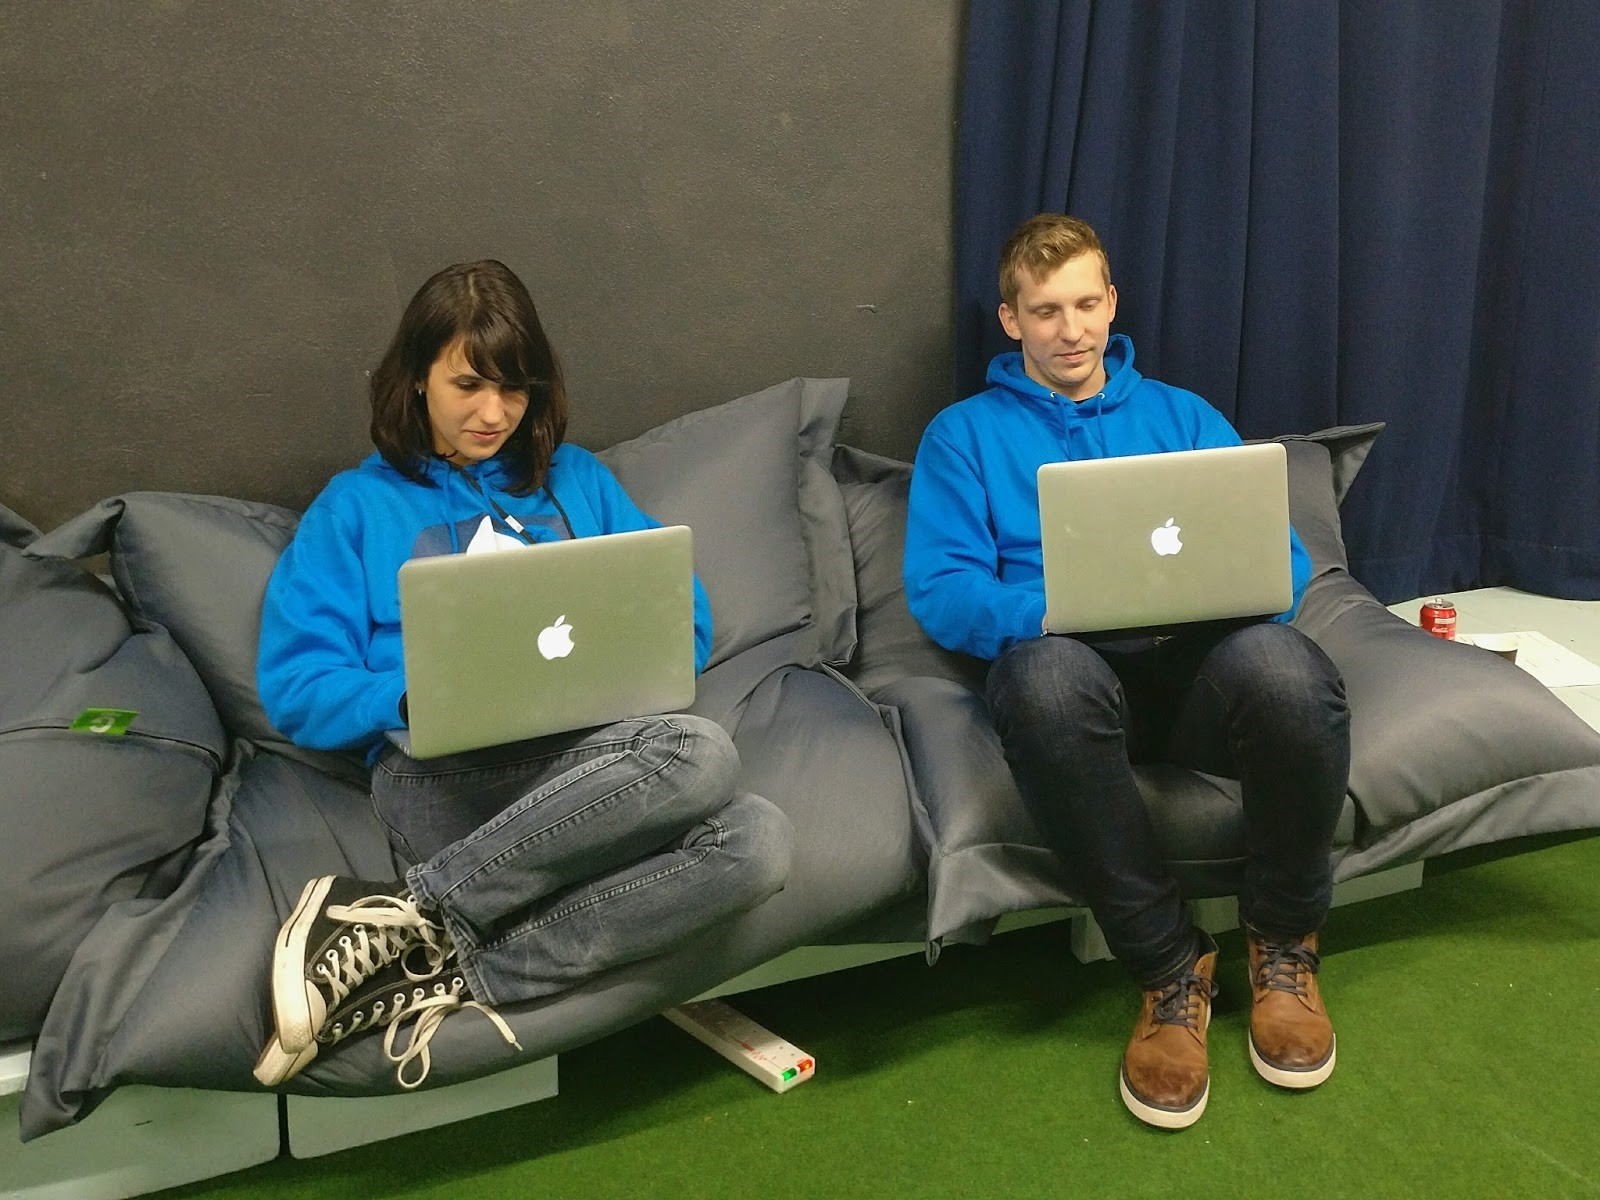 Hacking pros, Silvia and Jacek